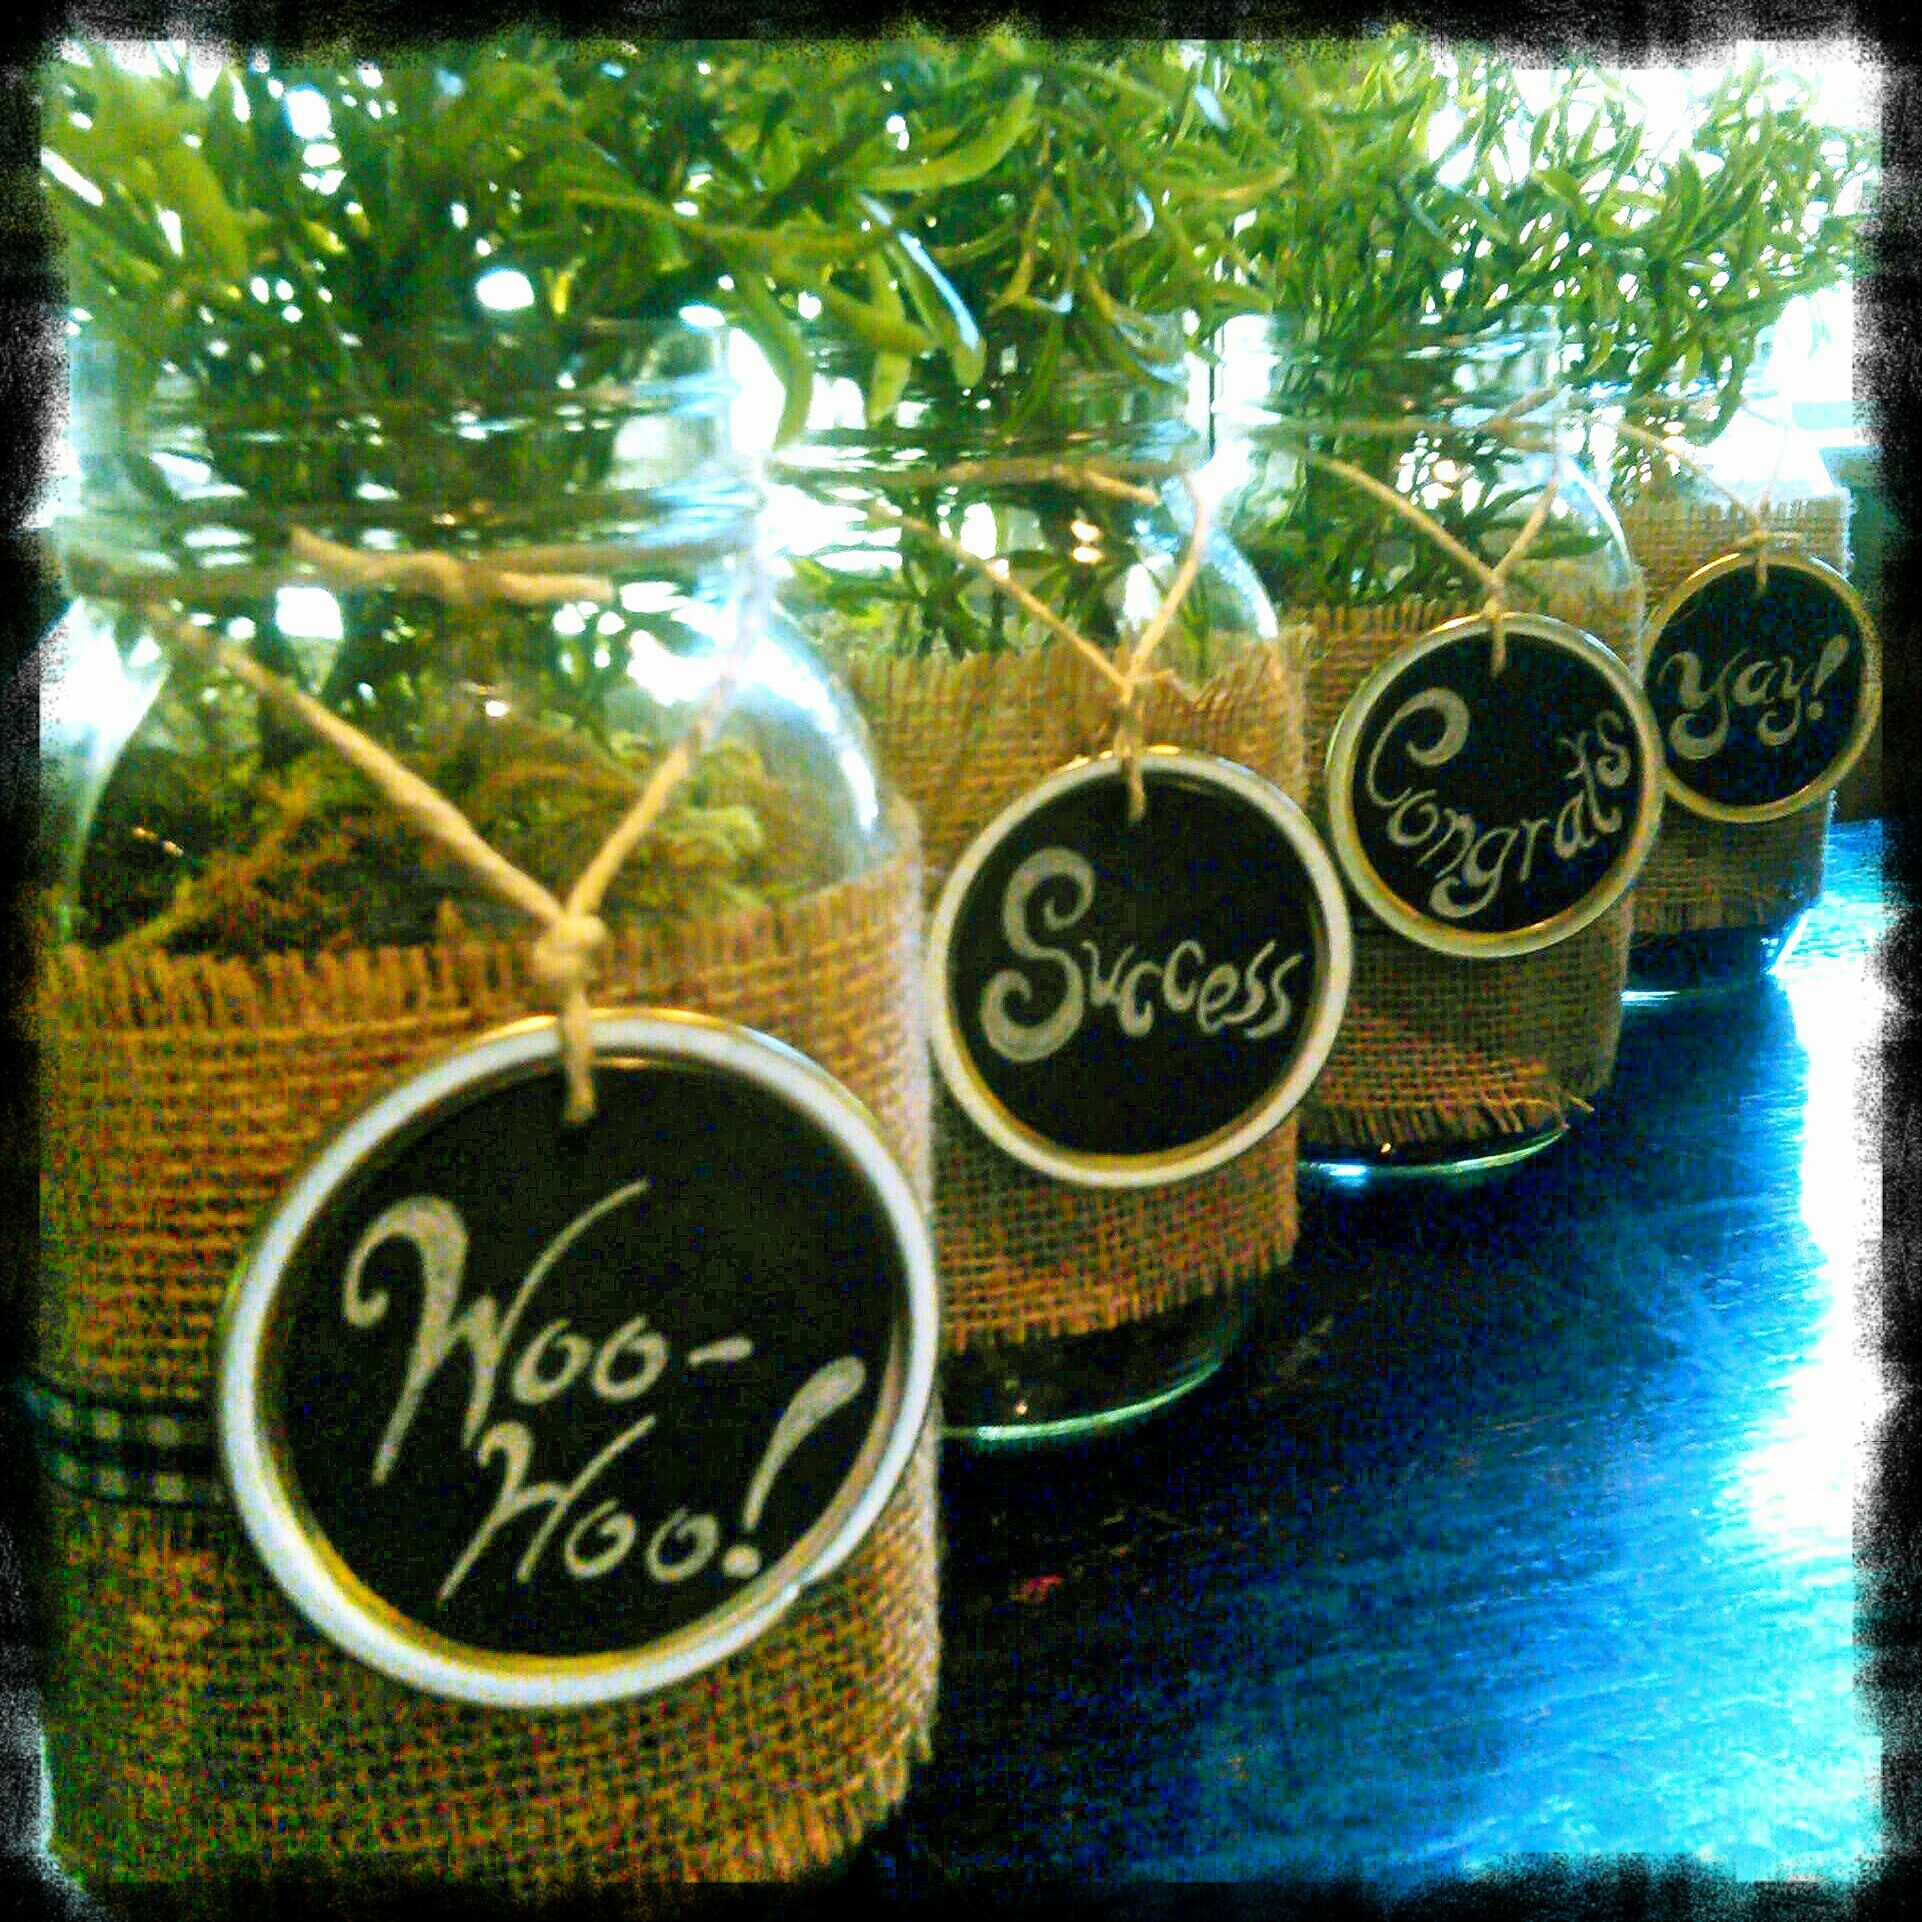 Mason Jar Table Top Decorations For A Graduation Party By Shalom Schultz Designs Green Herb